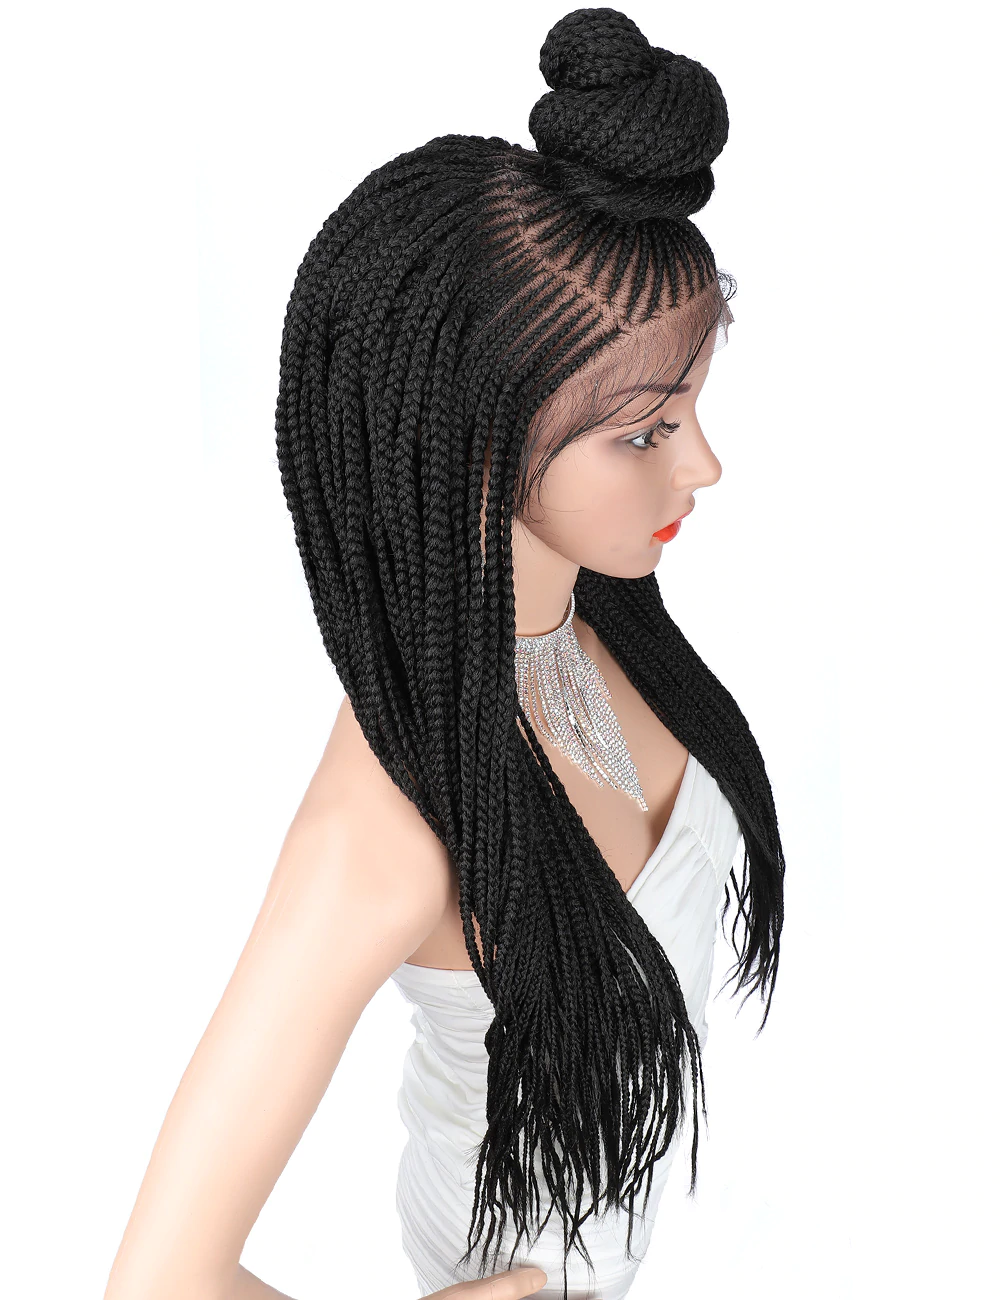 Updo 13x7 Braided Wigs | Synthetic handmade Lace Front Wig